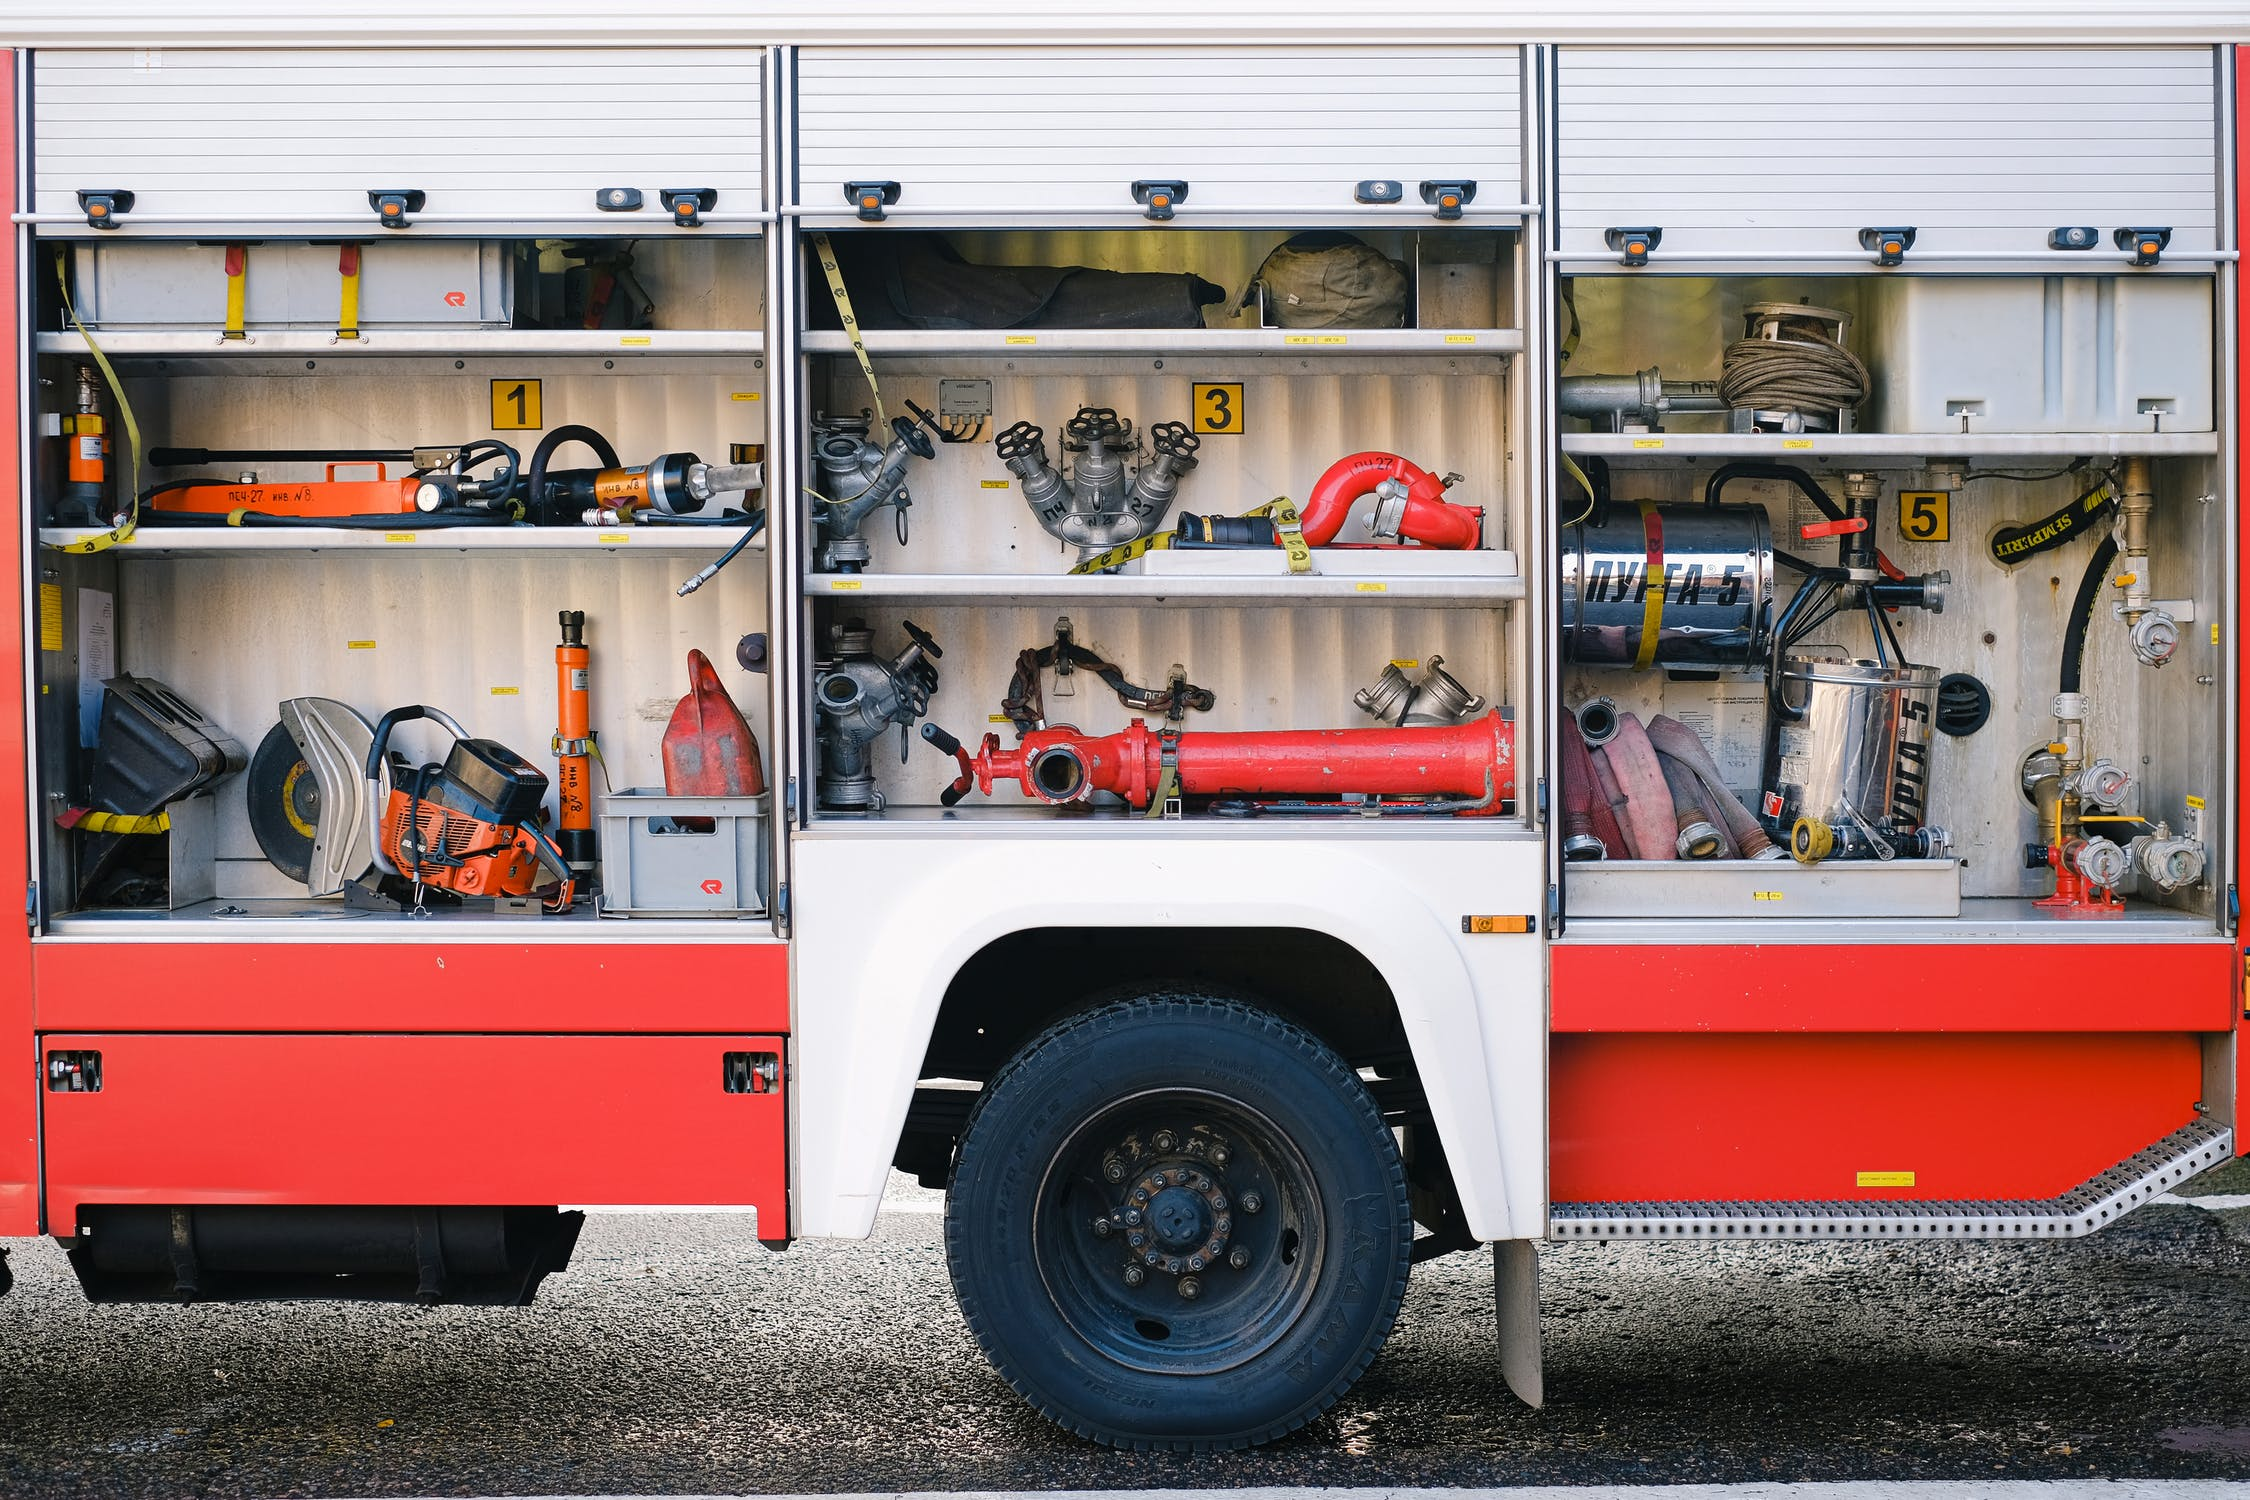 The cargo compartment of a firetruck displaying many emergency tools on shelves.